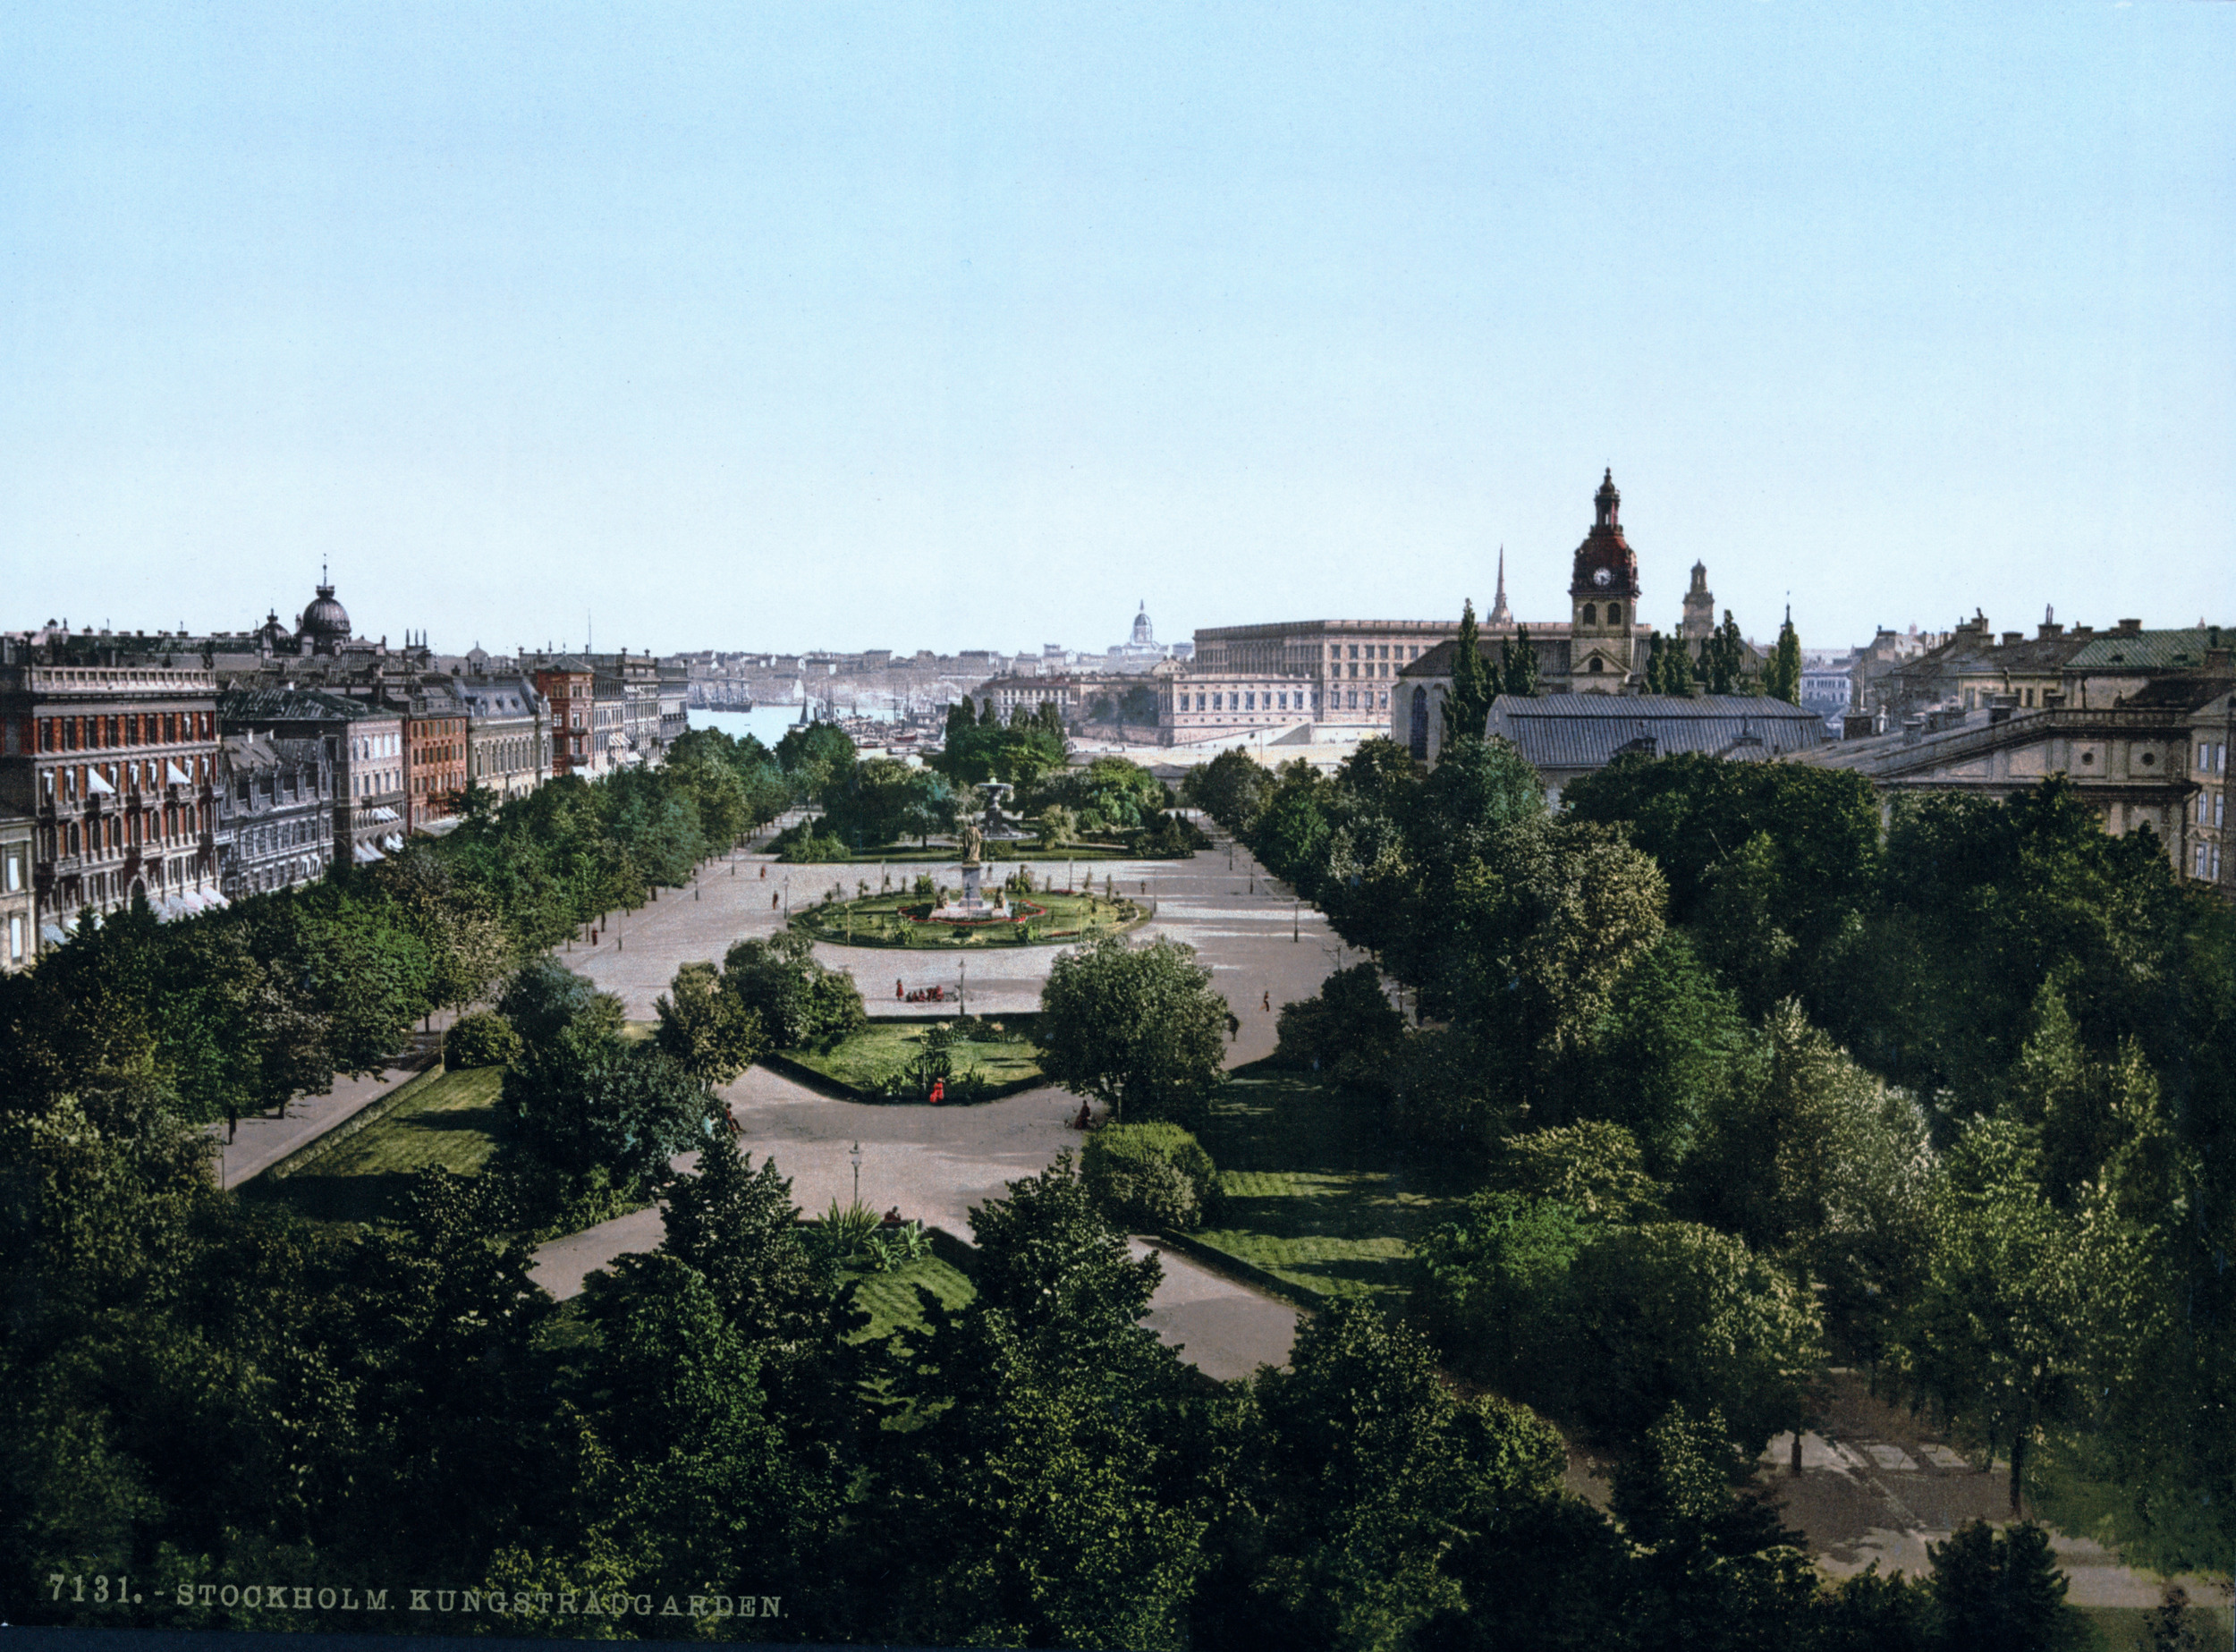 A Late 19th Century Postcard image of Kungsträdgården, Stockholm,currently administered by the Stockholm Chamber of Commerce.  Credit:  U.S. Library Of Congress Reproduction LC-DIG-PPMSC-06230 .